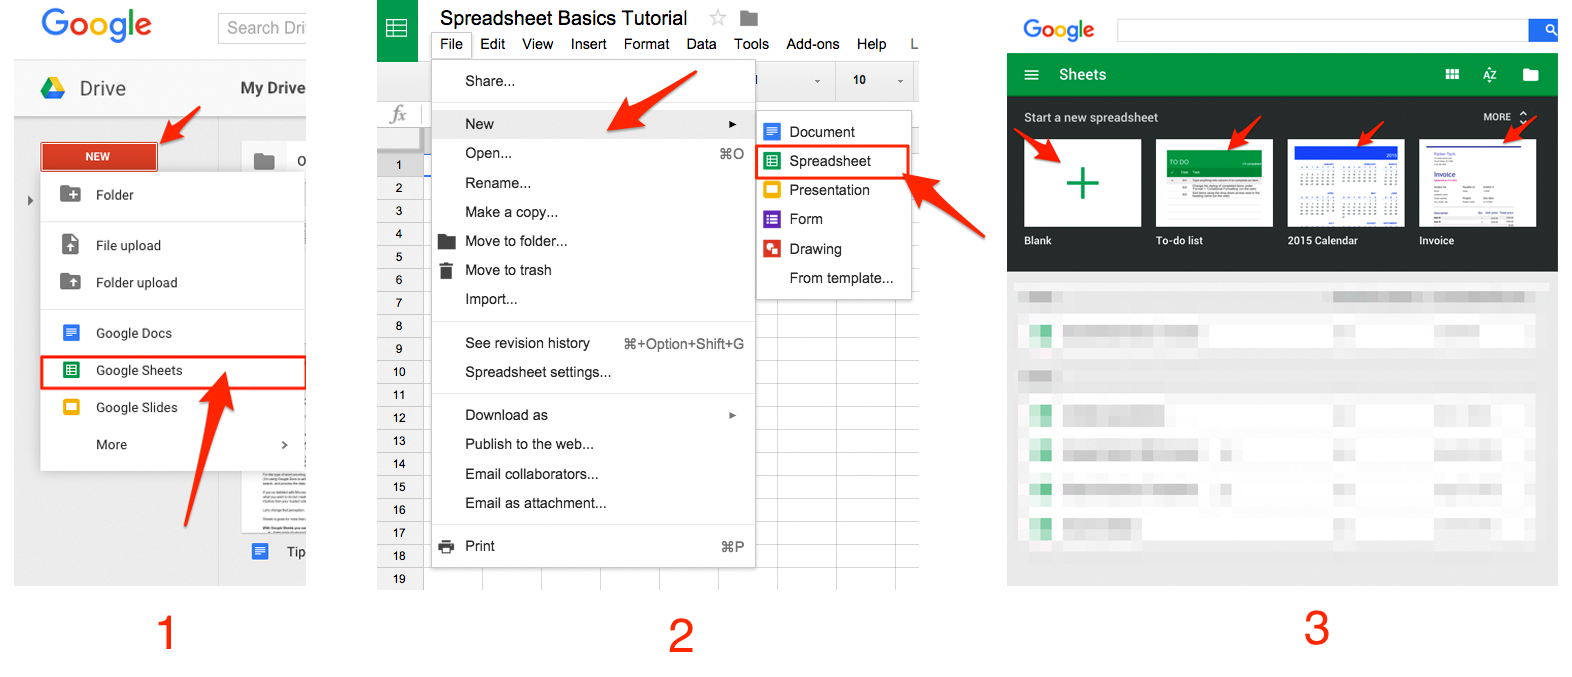 Spreadsheet Images With Google Sheets 101: The Beginner's Guide To Online Spreadsheets  The